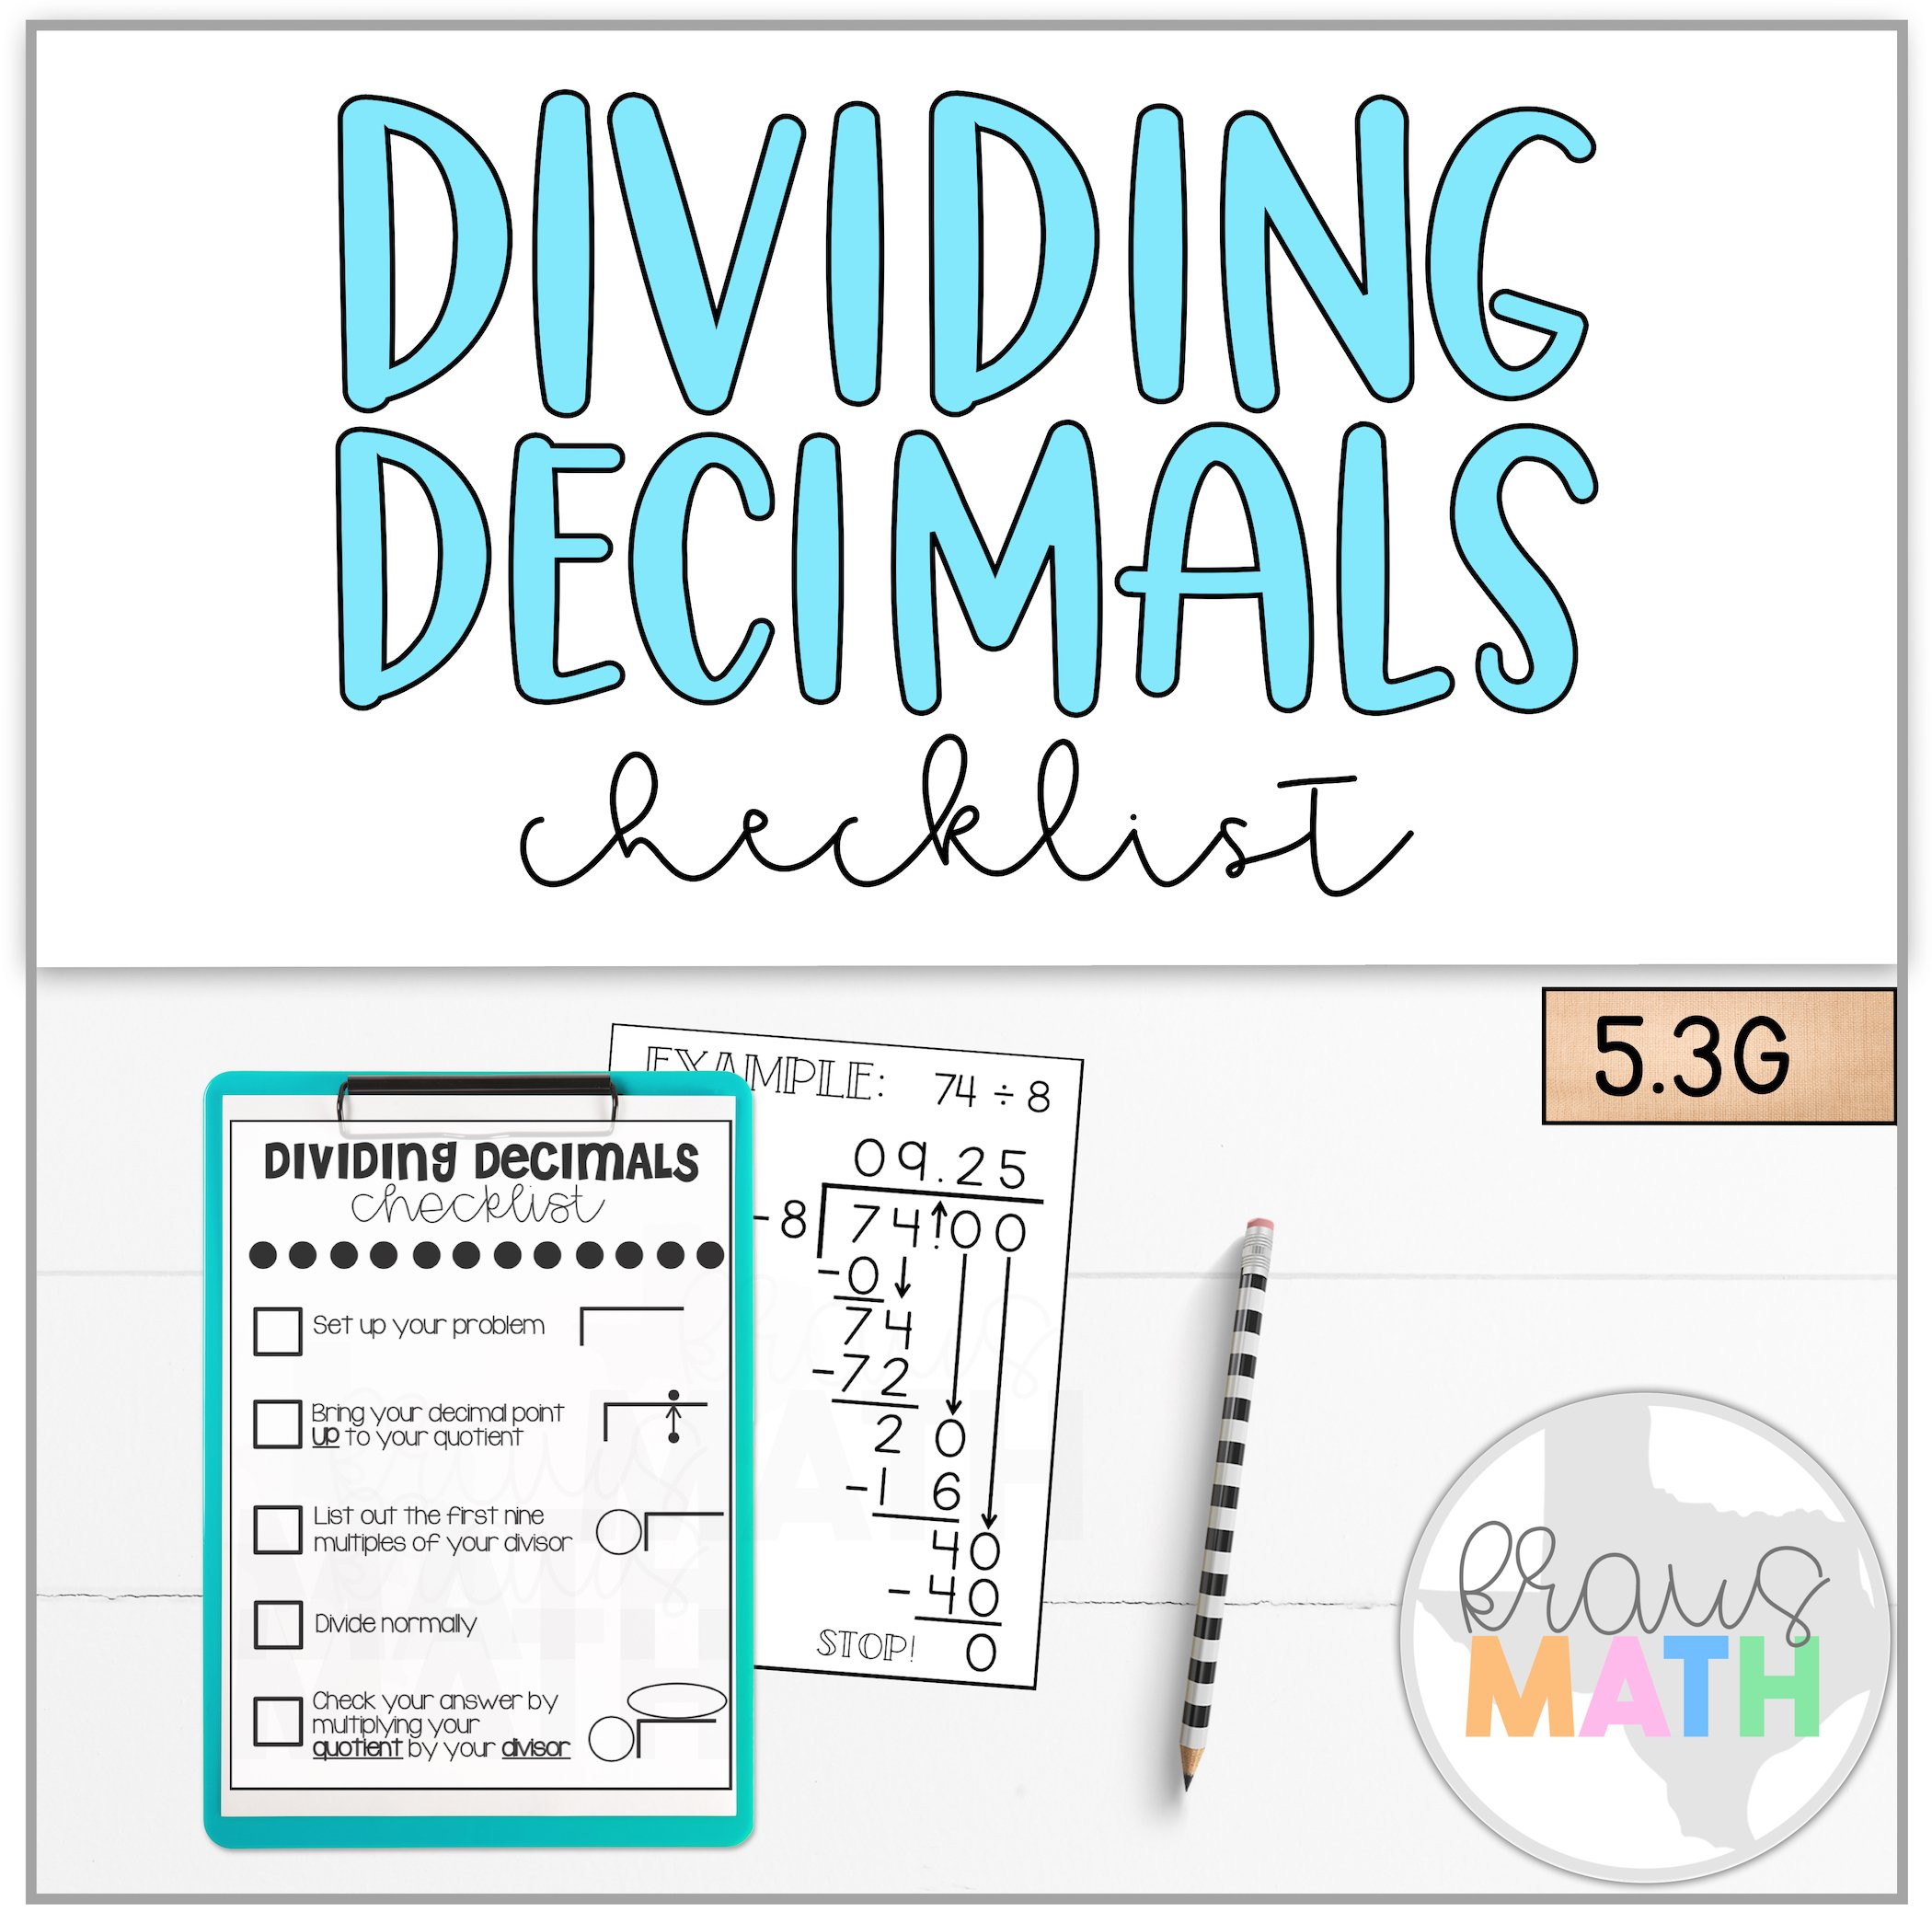 How To Divide Decimals Step By Step